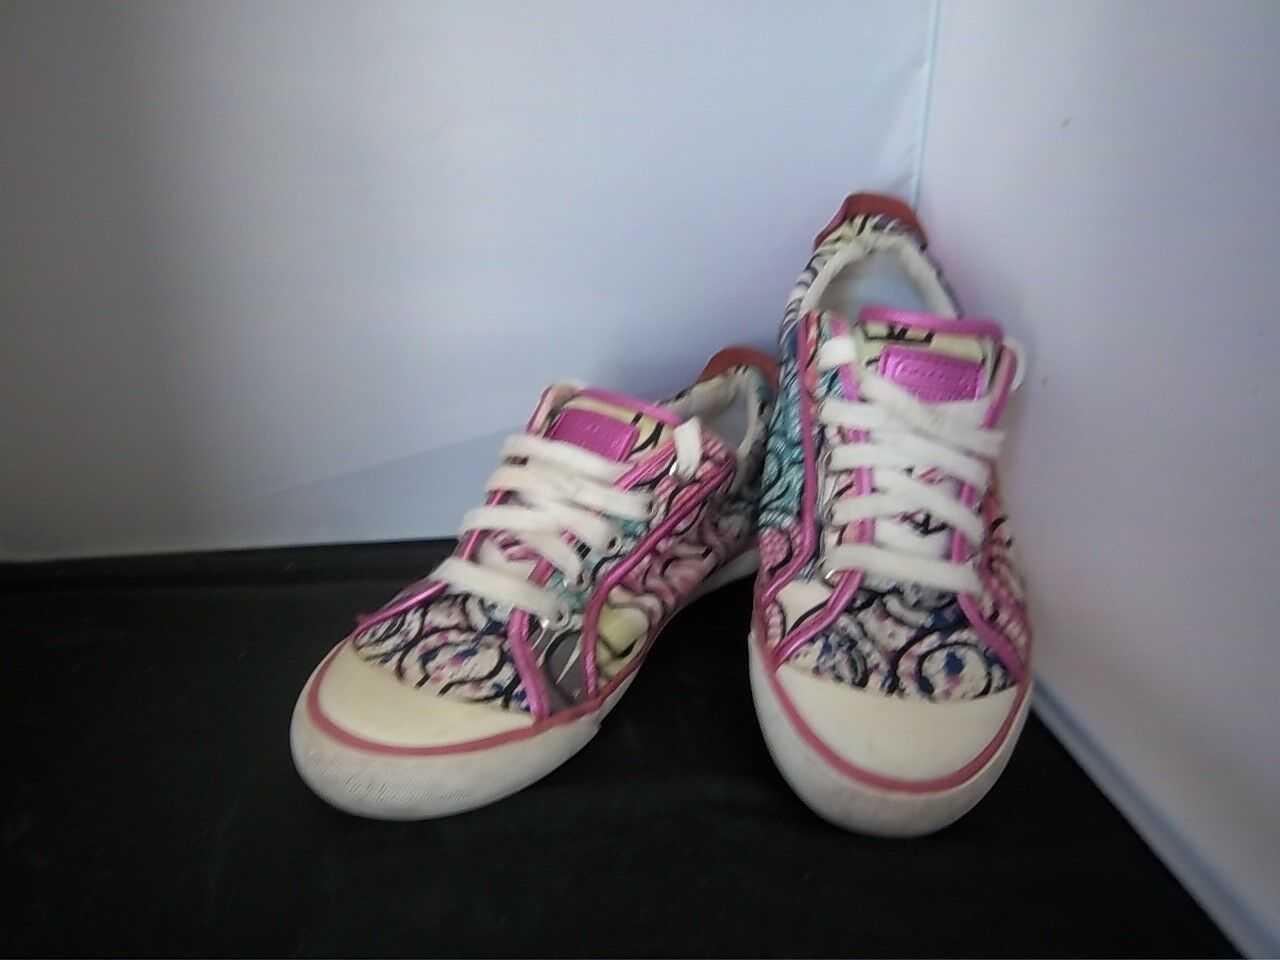 COACH - Women's - Bright Pink/Multi Colored Tennis Shoes - Women's SIZE 7 3d083c